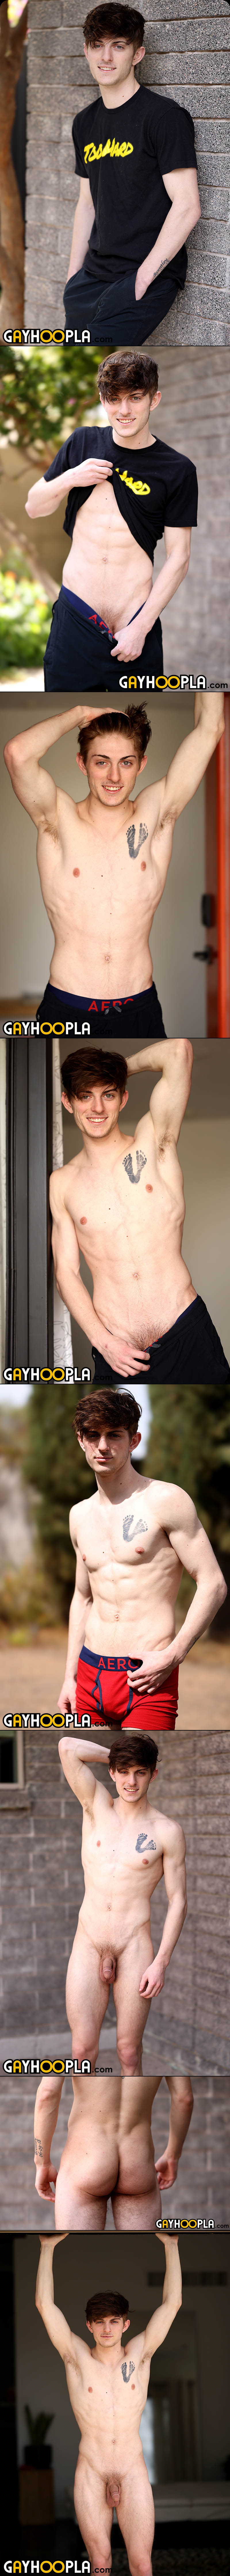 Bryce Kelly [TikTok Star Takes It To The Bedroom] at GayHoopla